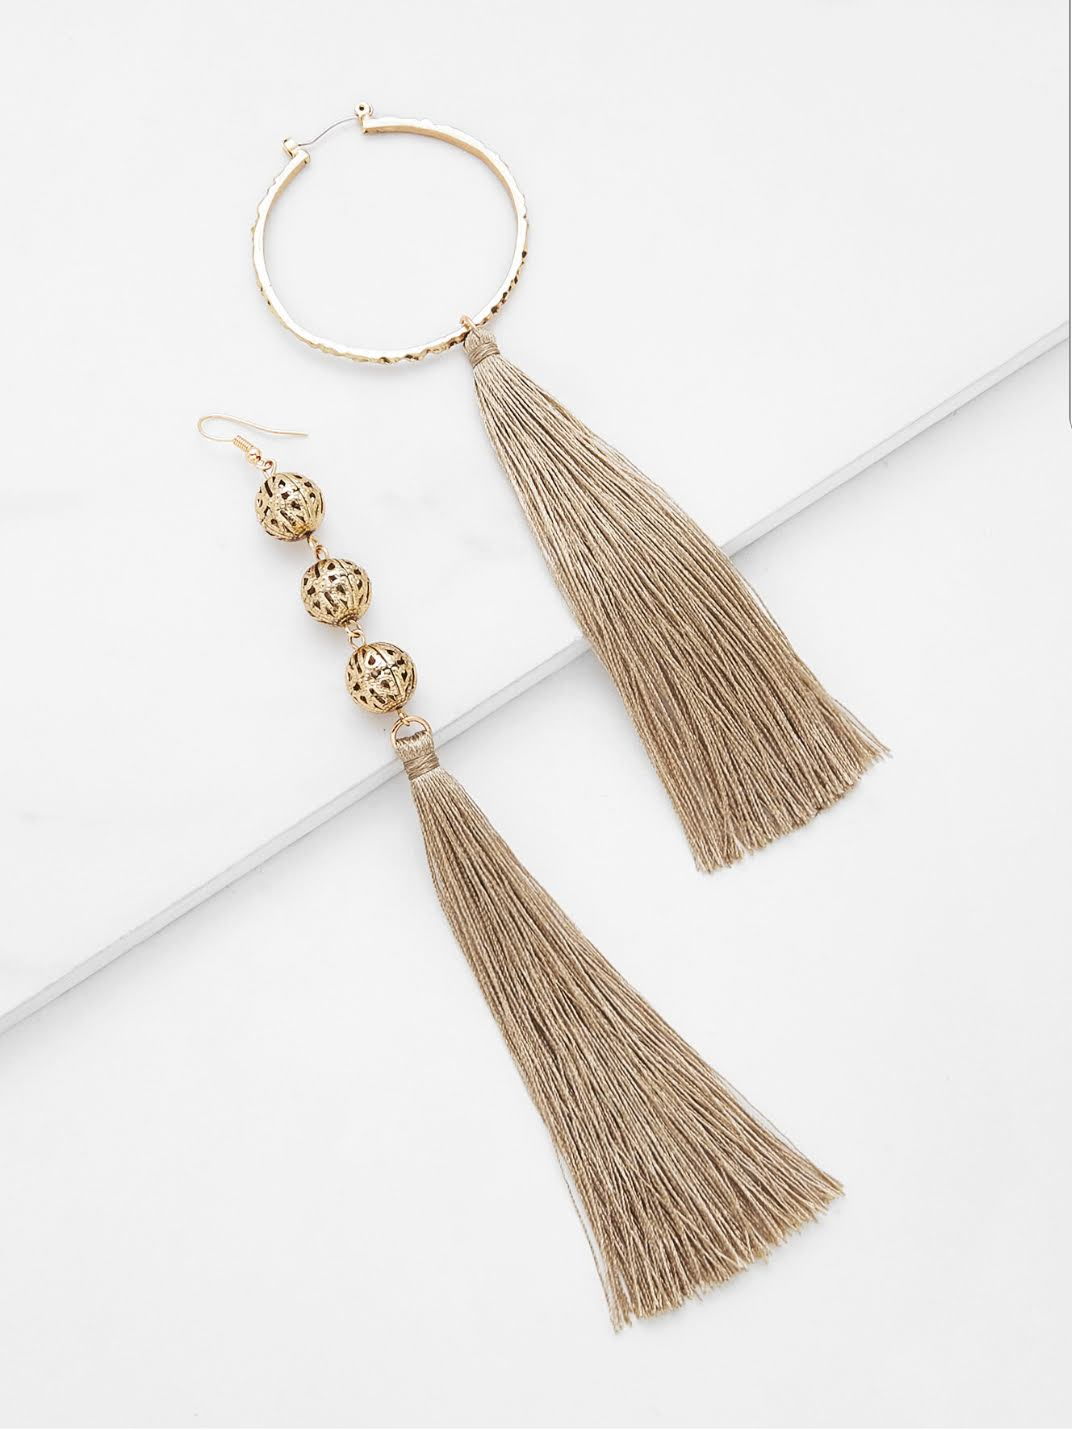 Spanish Caravan Earrings